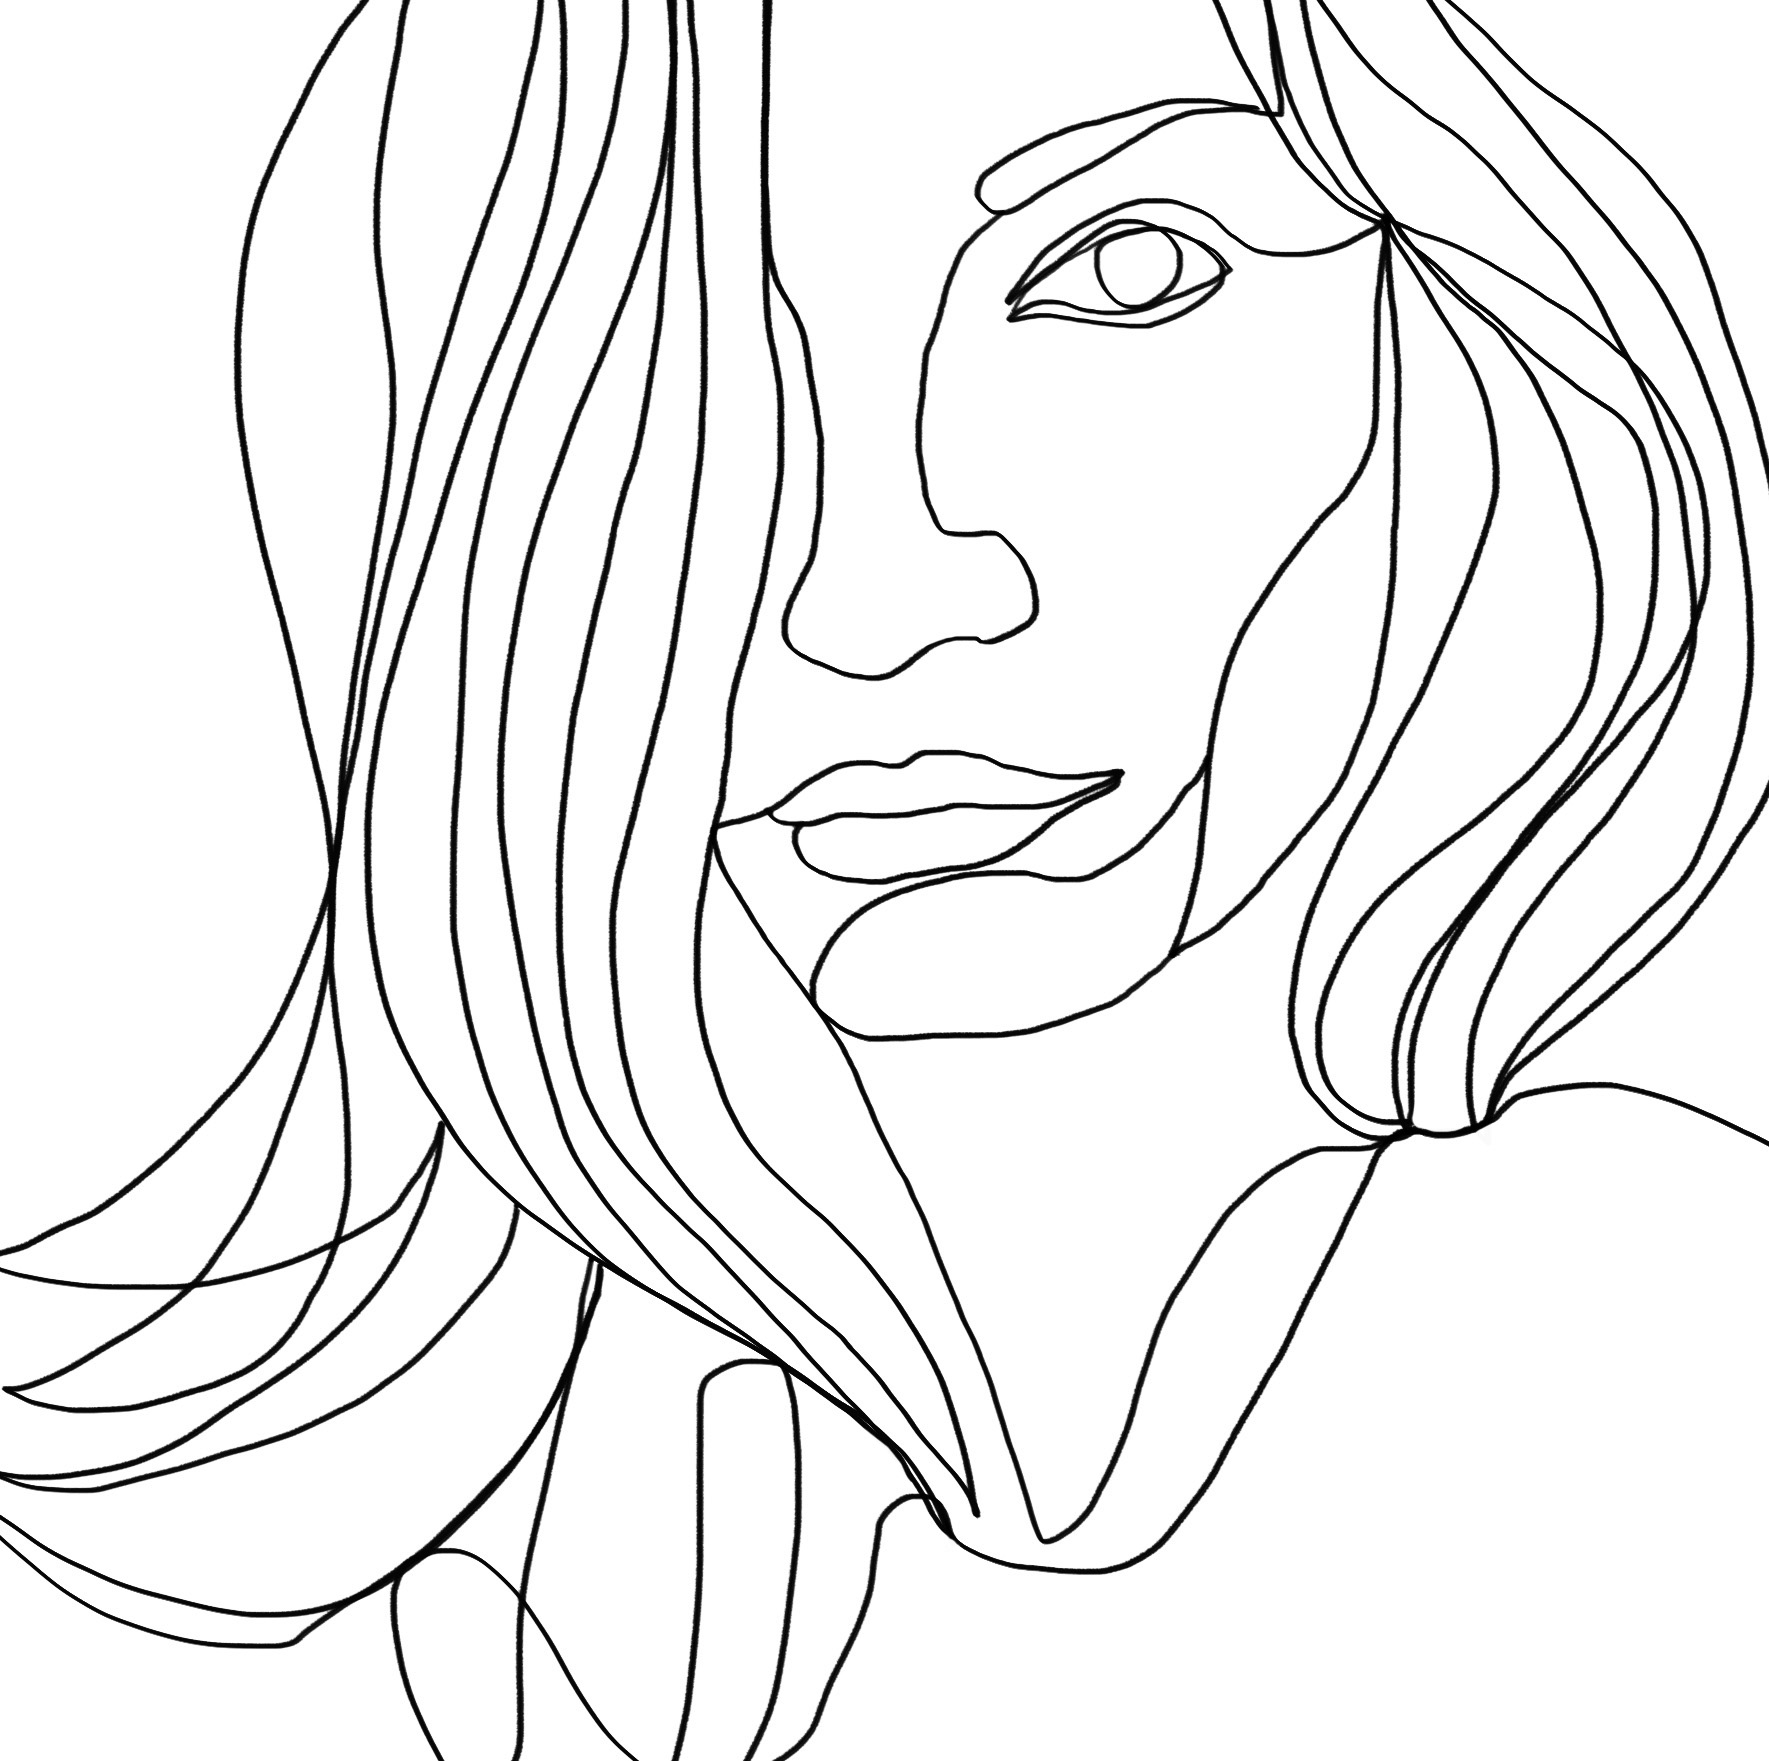 selfportrait continuous linedrawing ashleychase.jpg